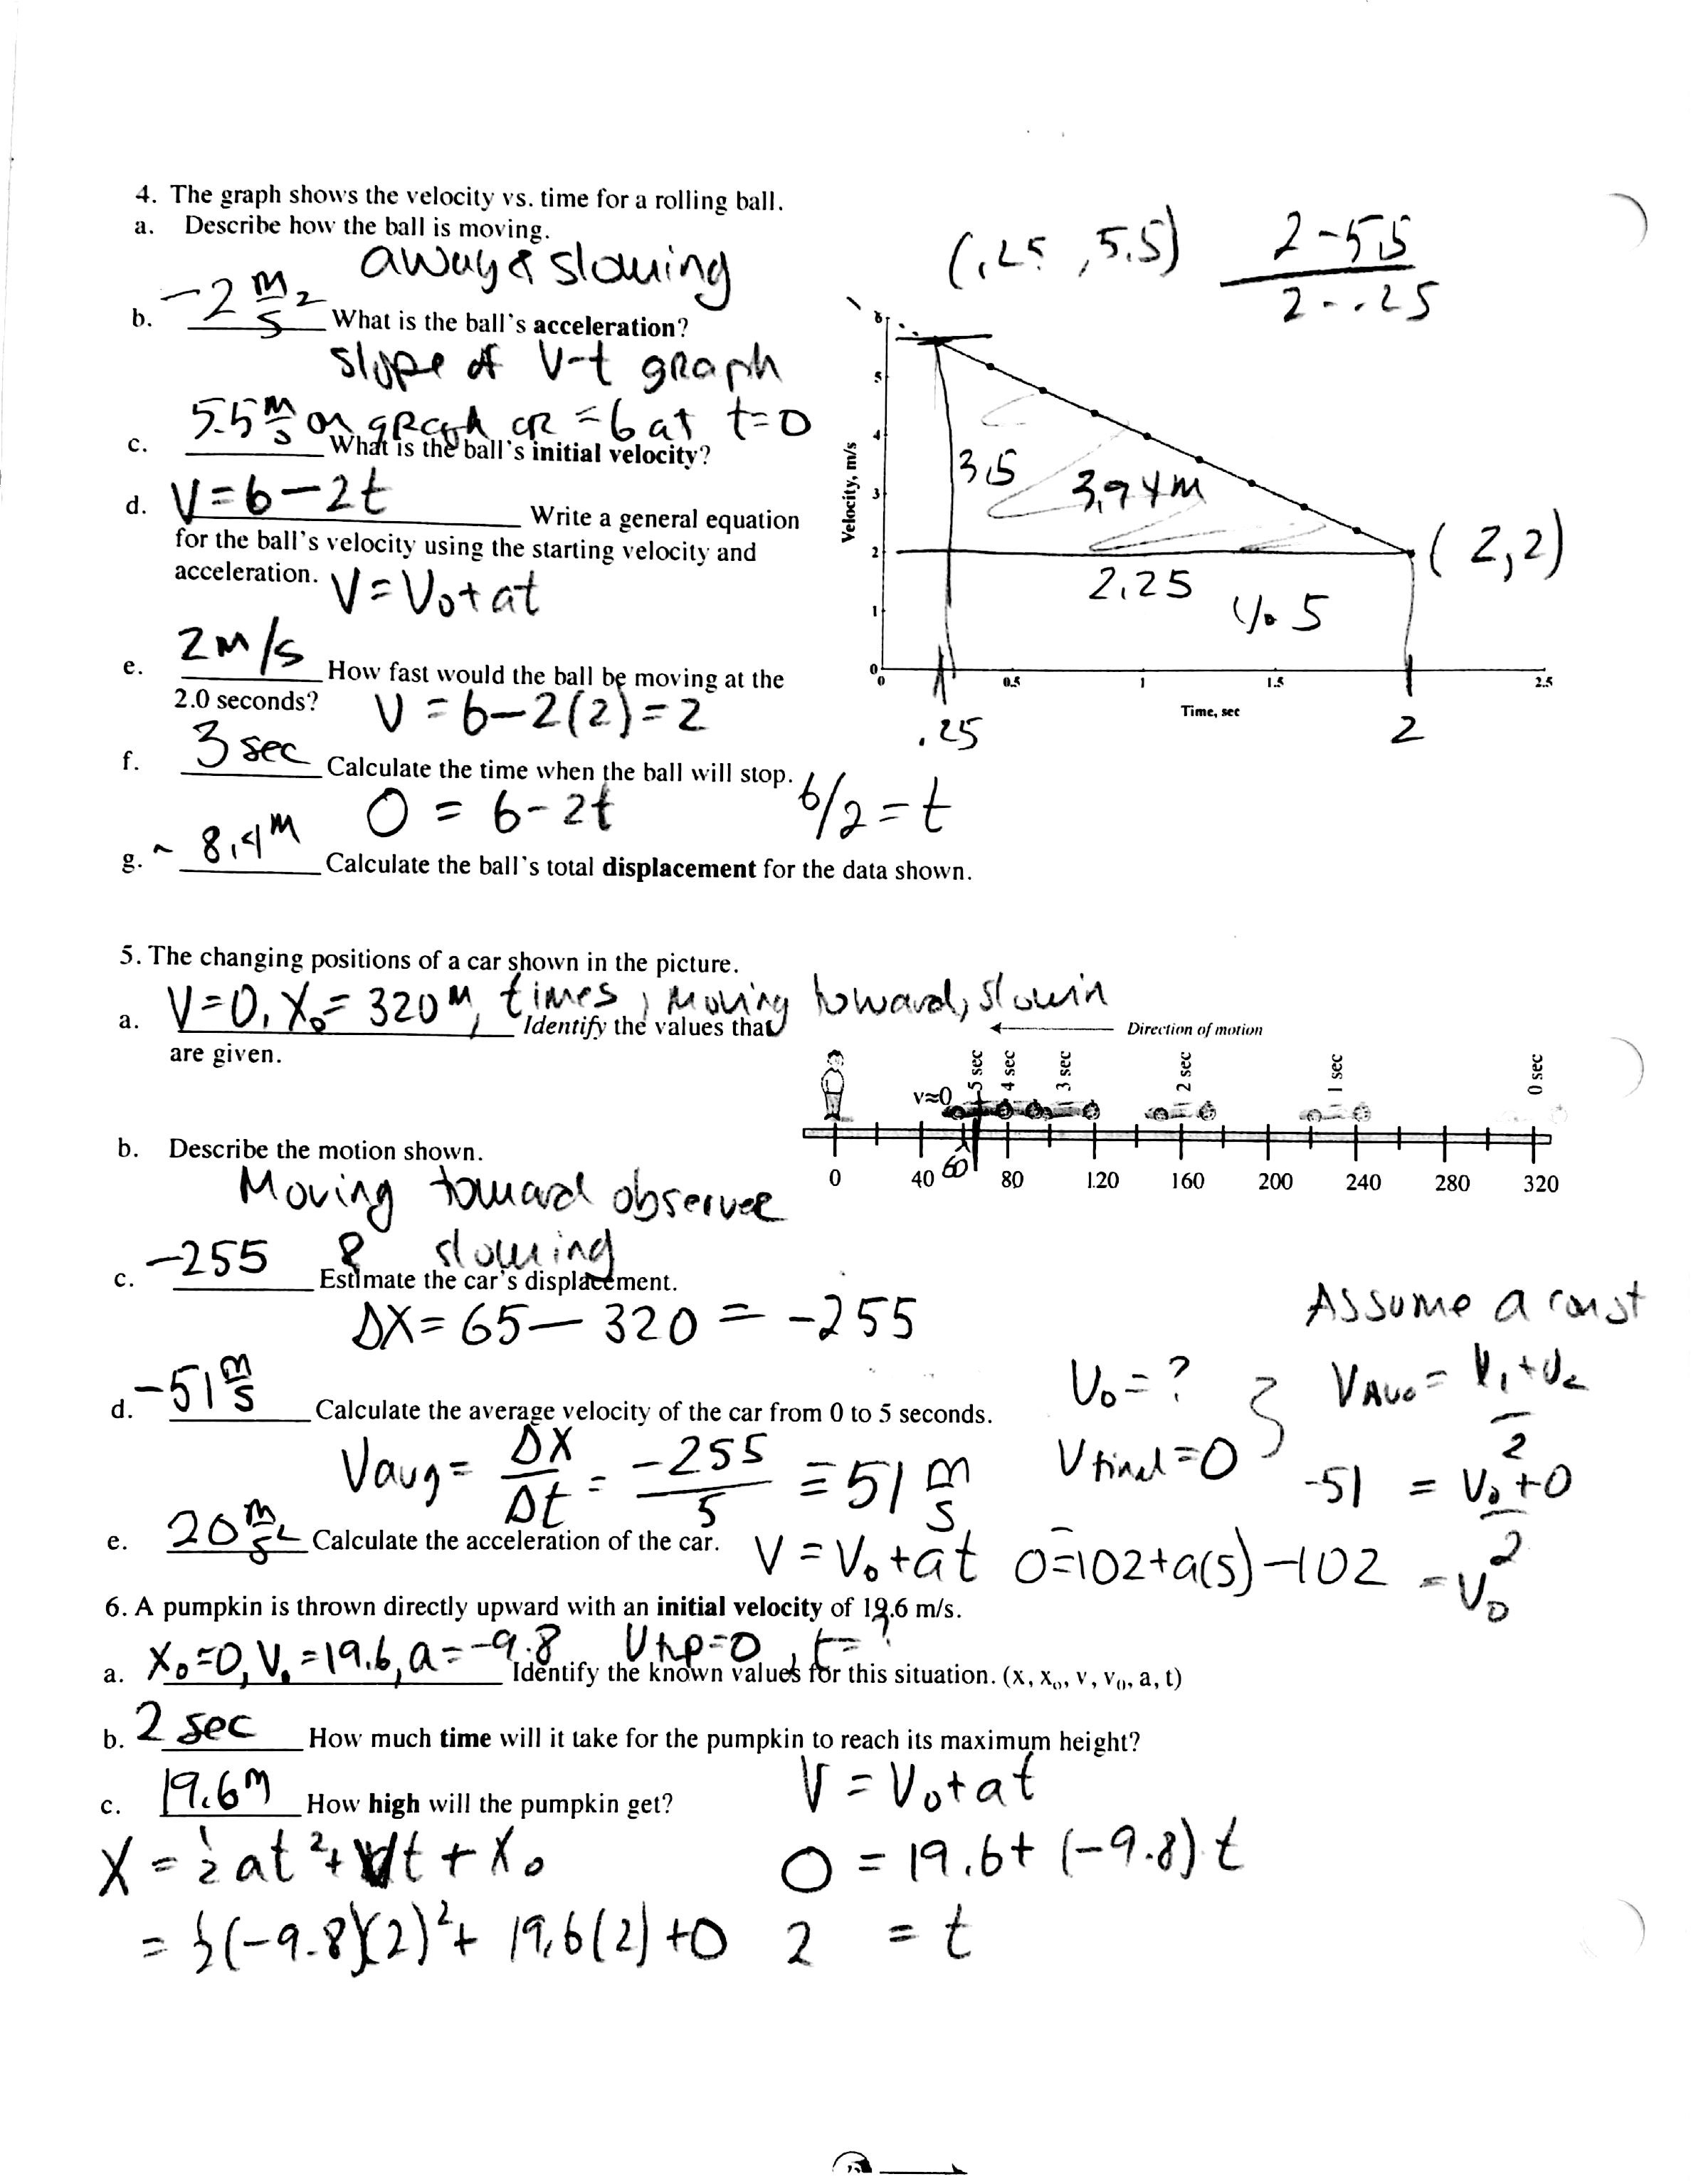 Physical Science Worksheet Conservation Of Energy 2 Answer  Grad And Physical Science Worksheet Conservation Of Energy 2 Answer Key